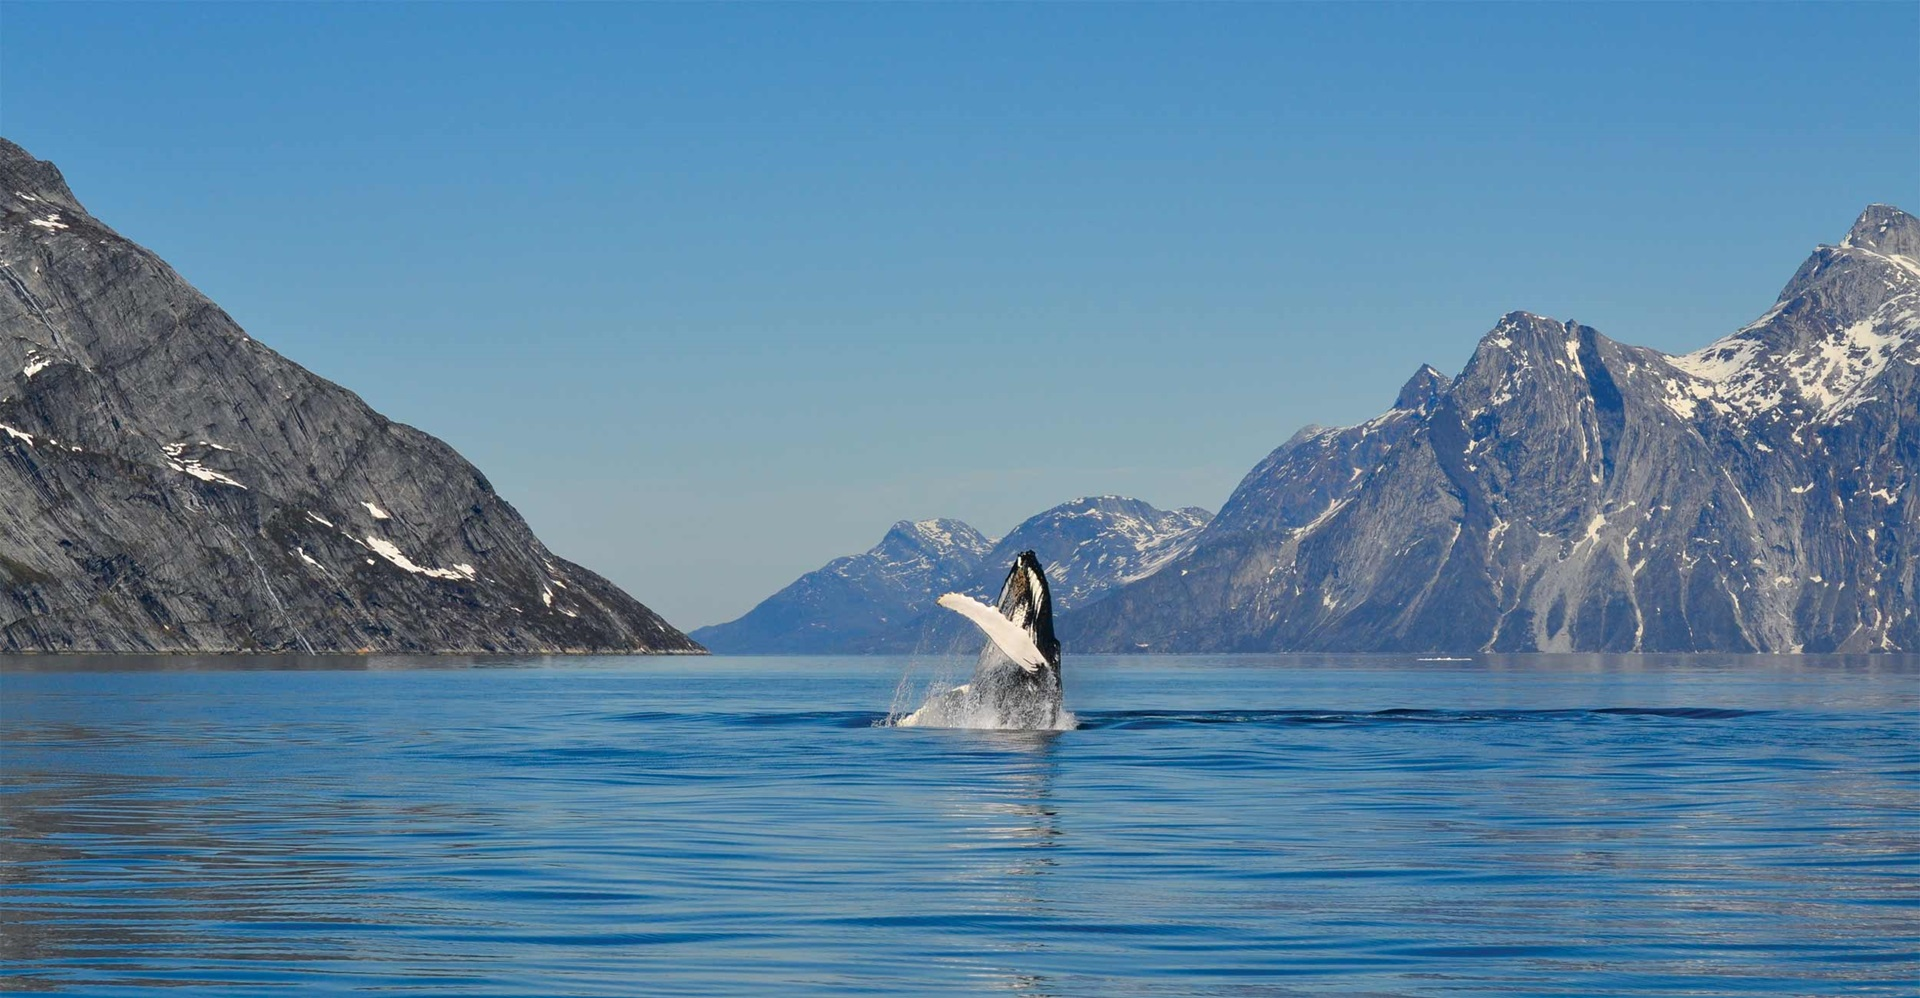 Aurora Expeditions - Humpback Whale in Nuuk Fjord